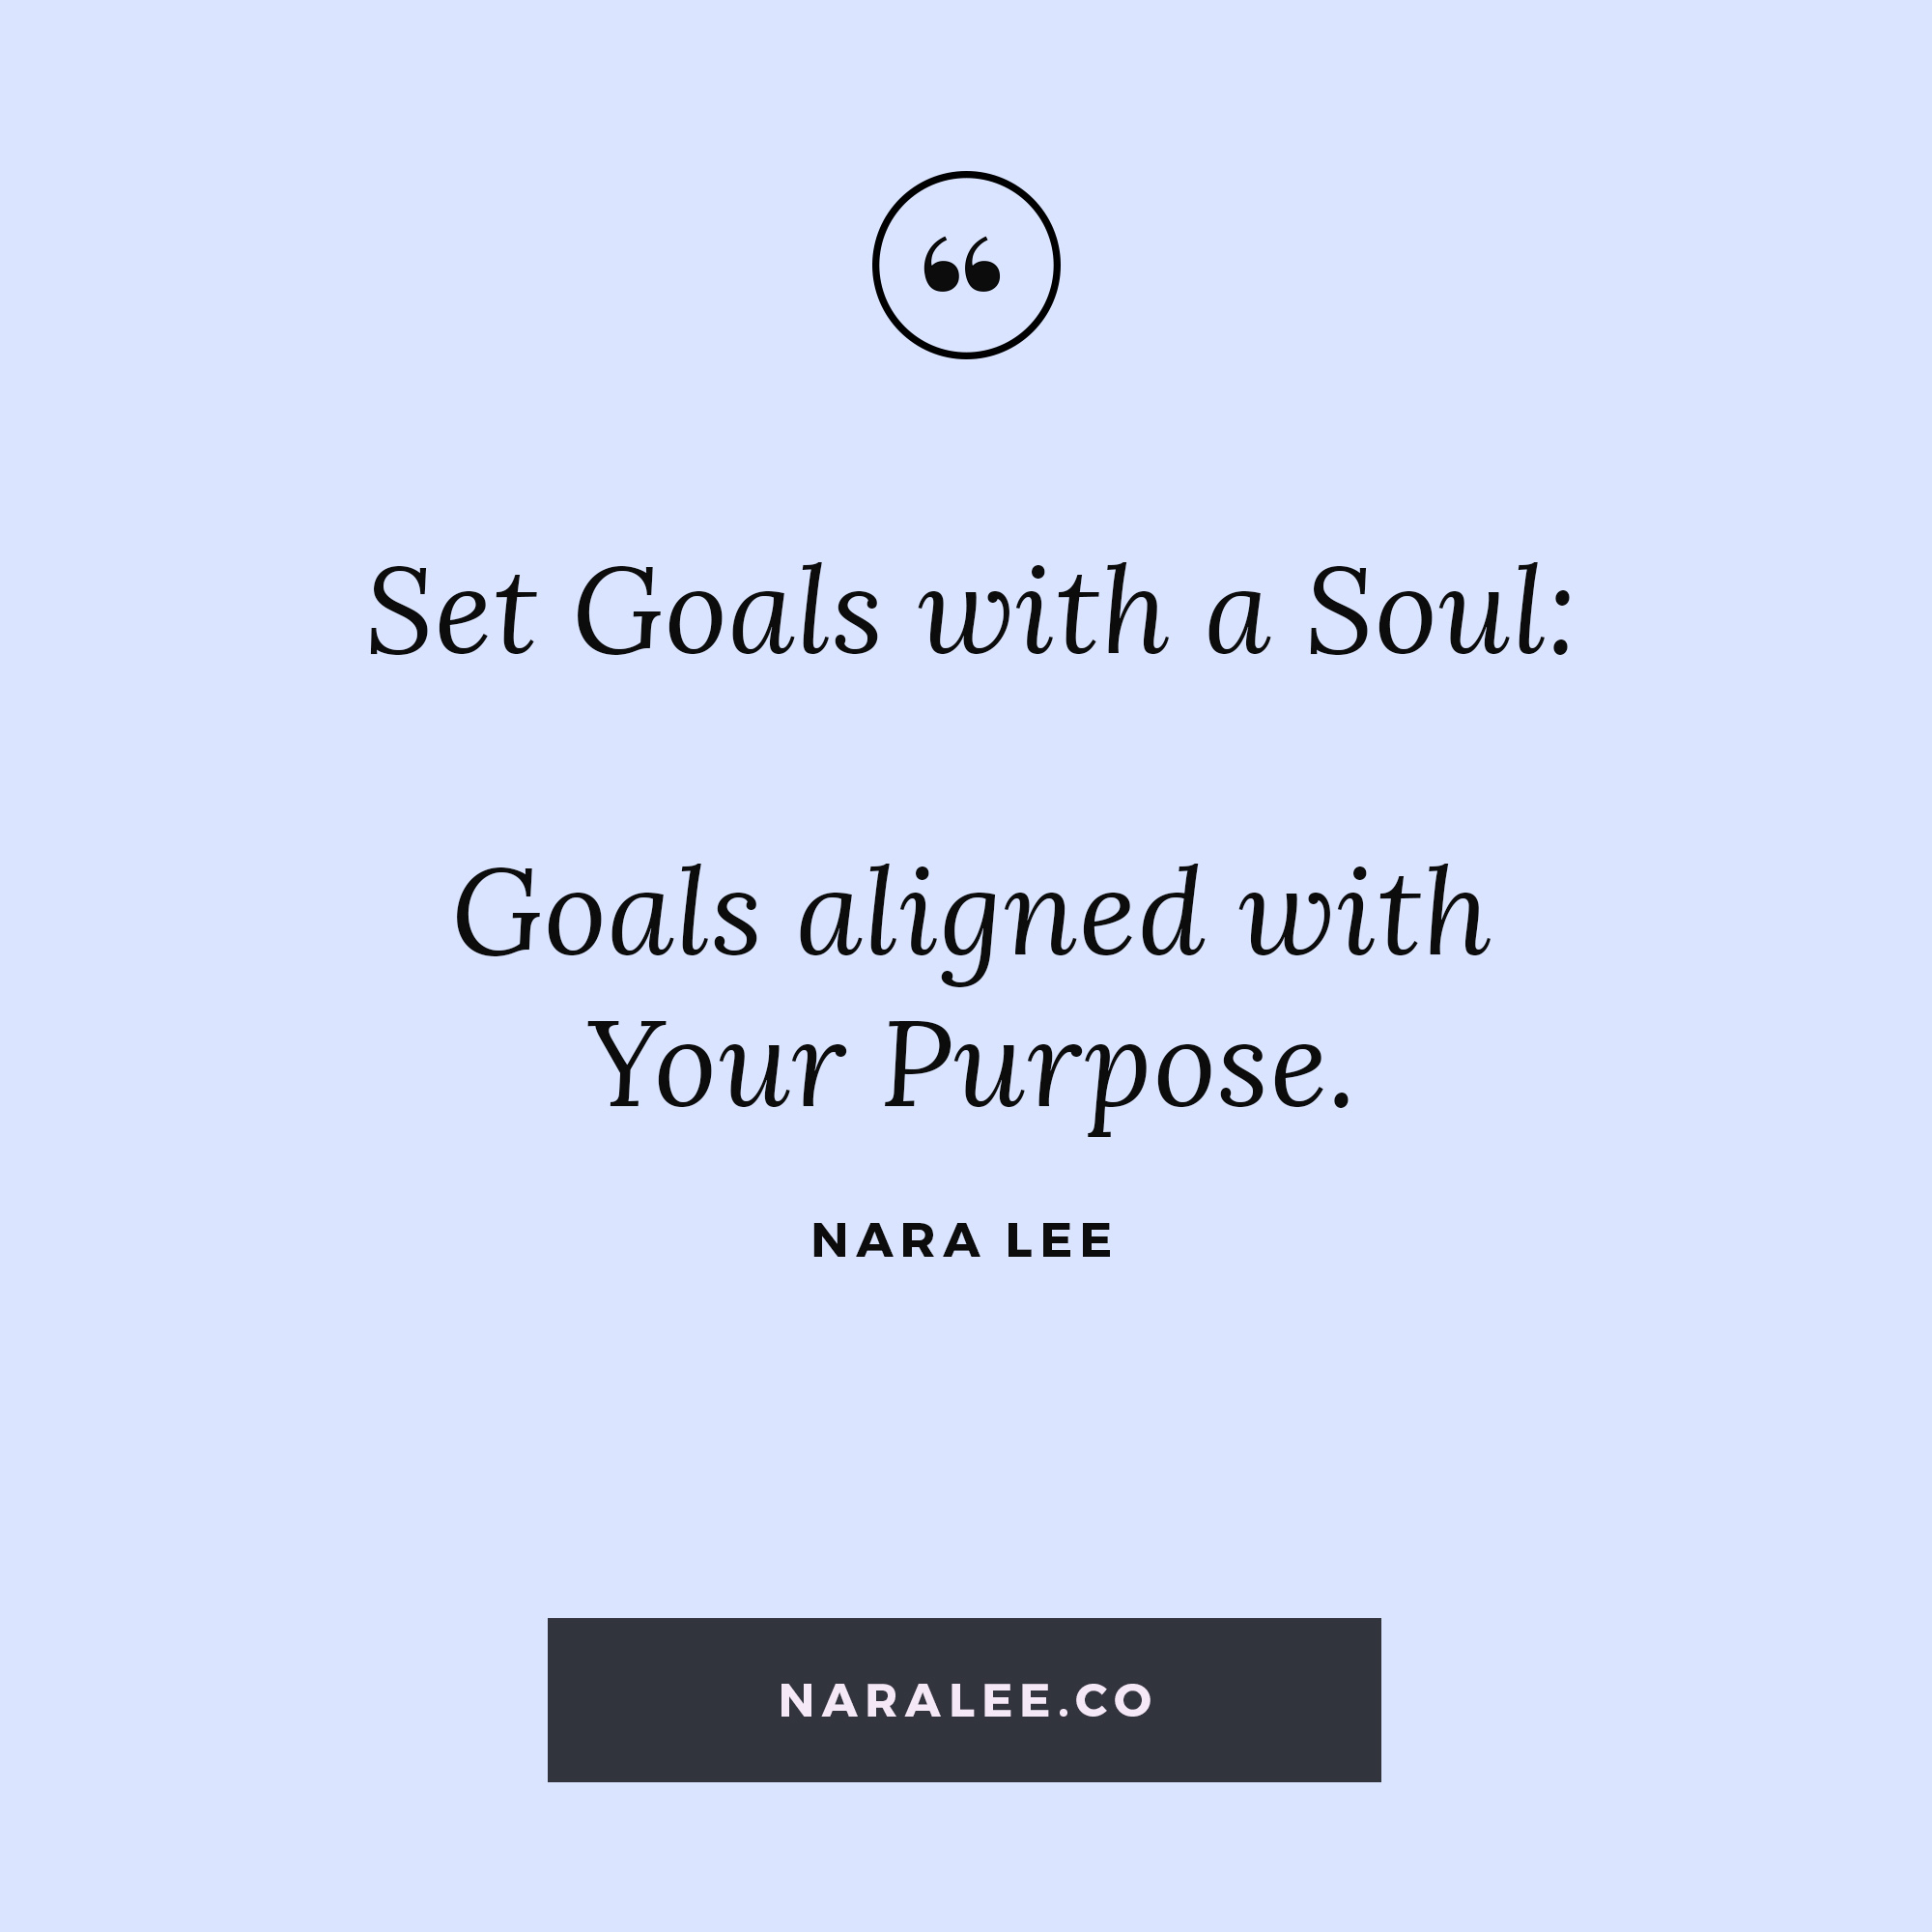 [Goal-Setting-Quotes] Nara Lee Quotes - Goals with a Soul.jpg